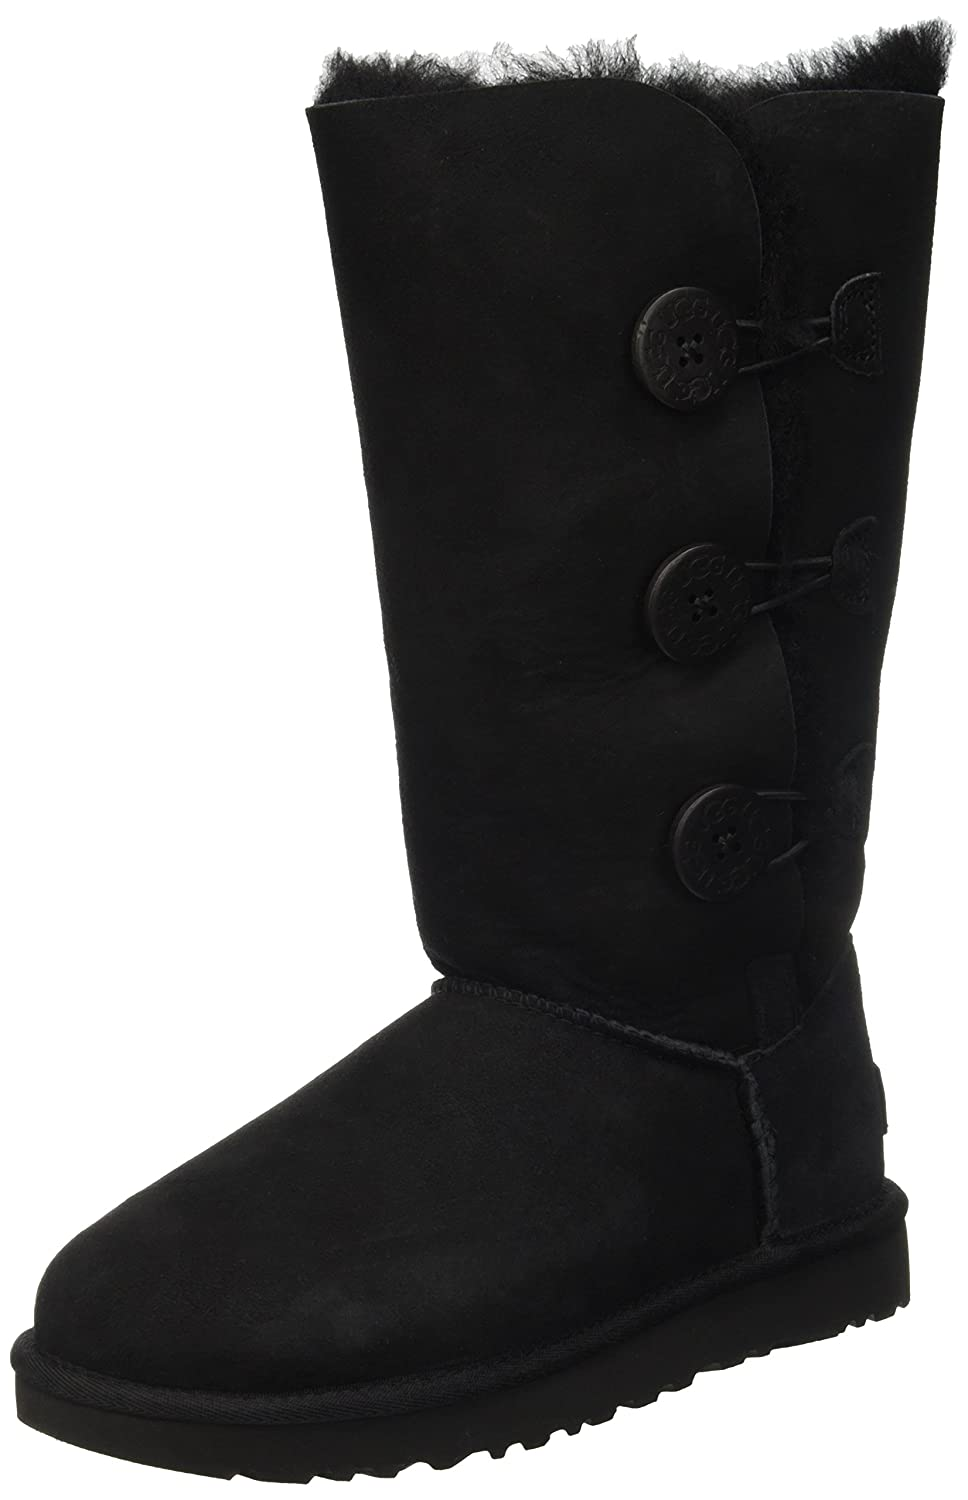 b8d91b9f9f8 UGG Women's Bailey Button Triplet Ii Winter Boot